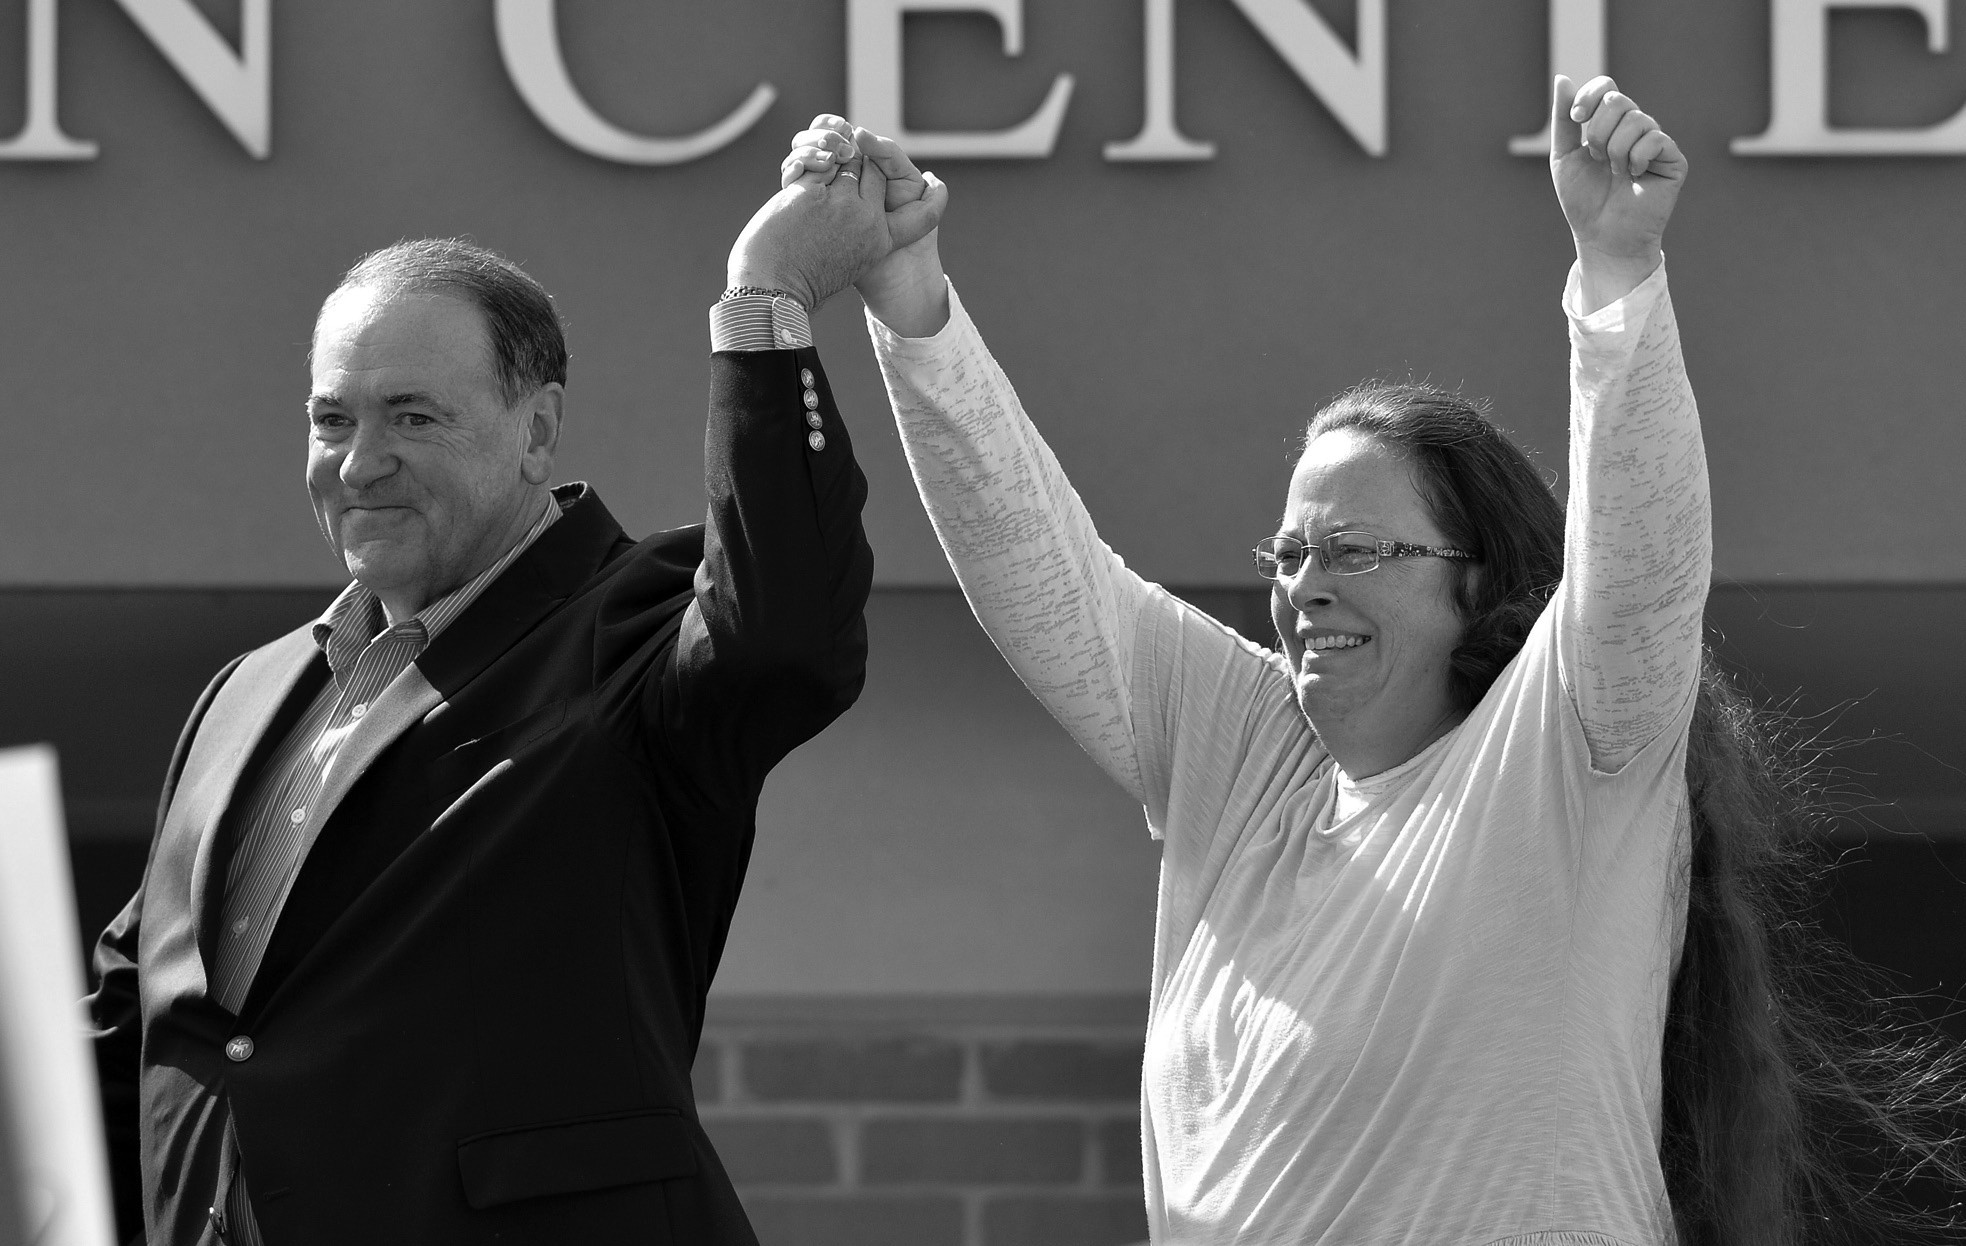 In this Sept. 8, file photo, Rowan County Clerk Kim Davis, with Republican presidential candidate Mike Huckabee at her side, greets the crowd after being released from the Carter County Detention Center, in Grayson, Ky.